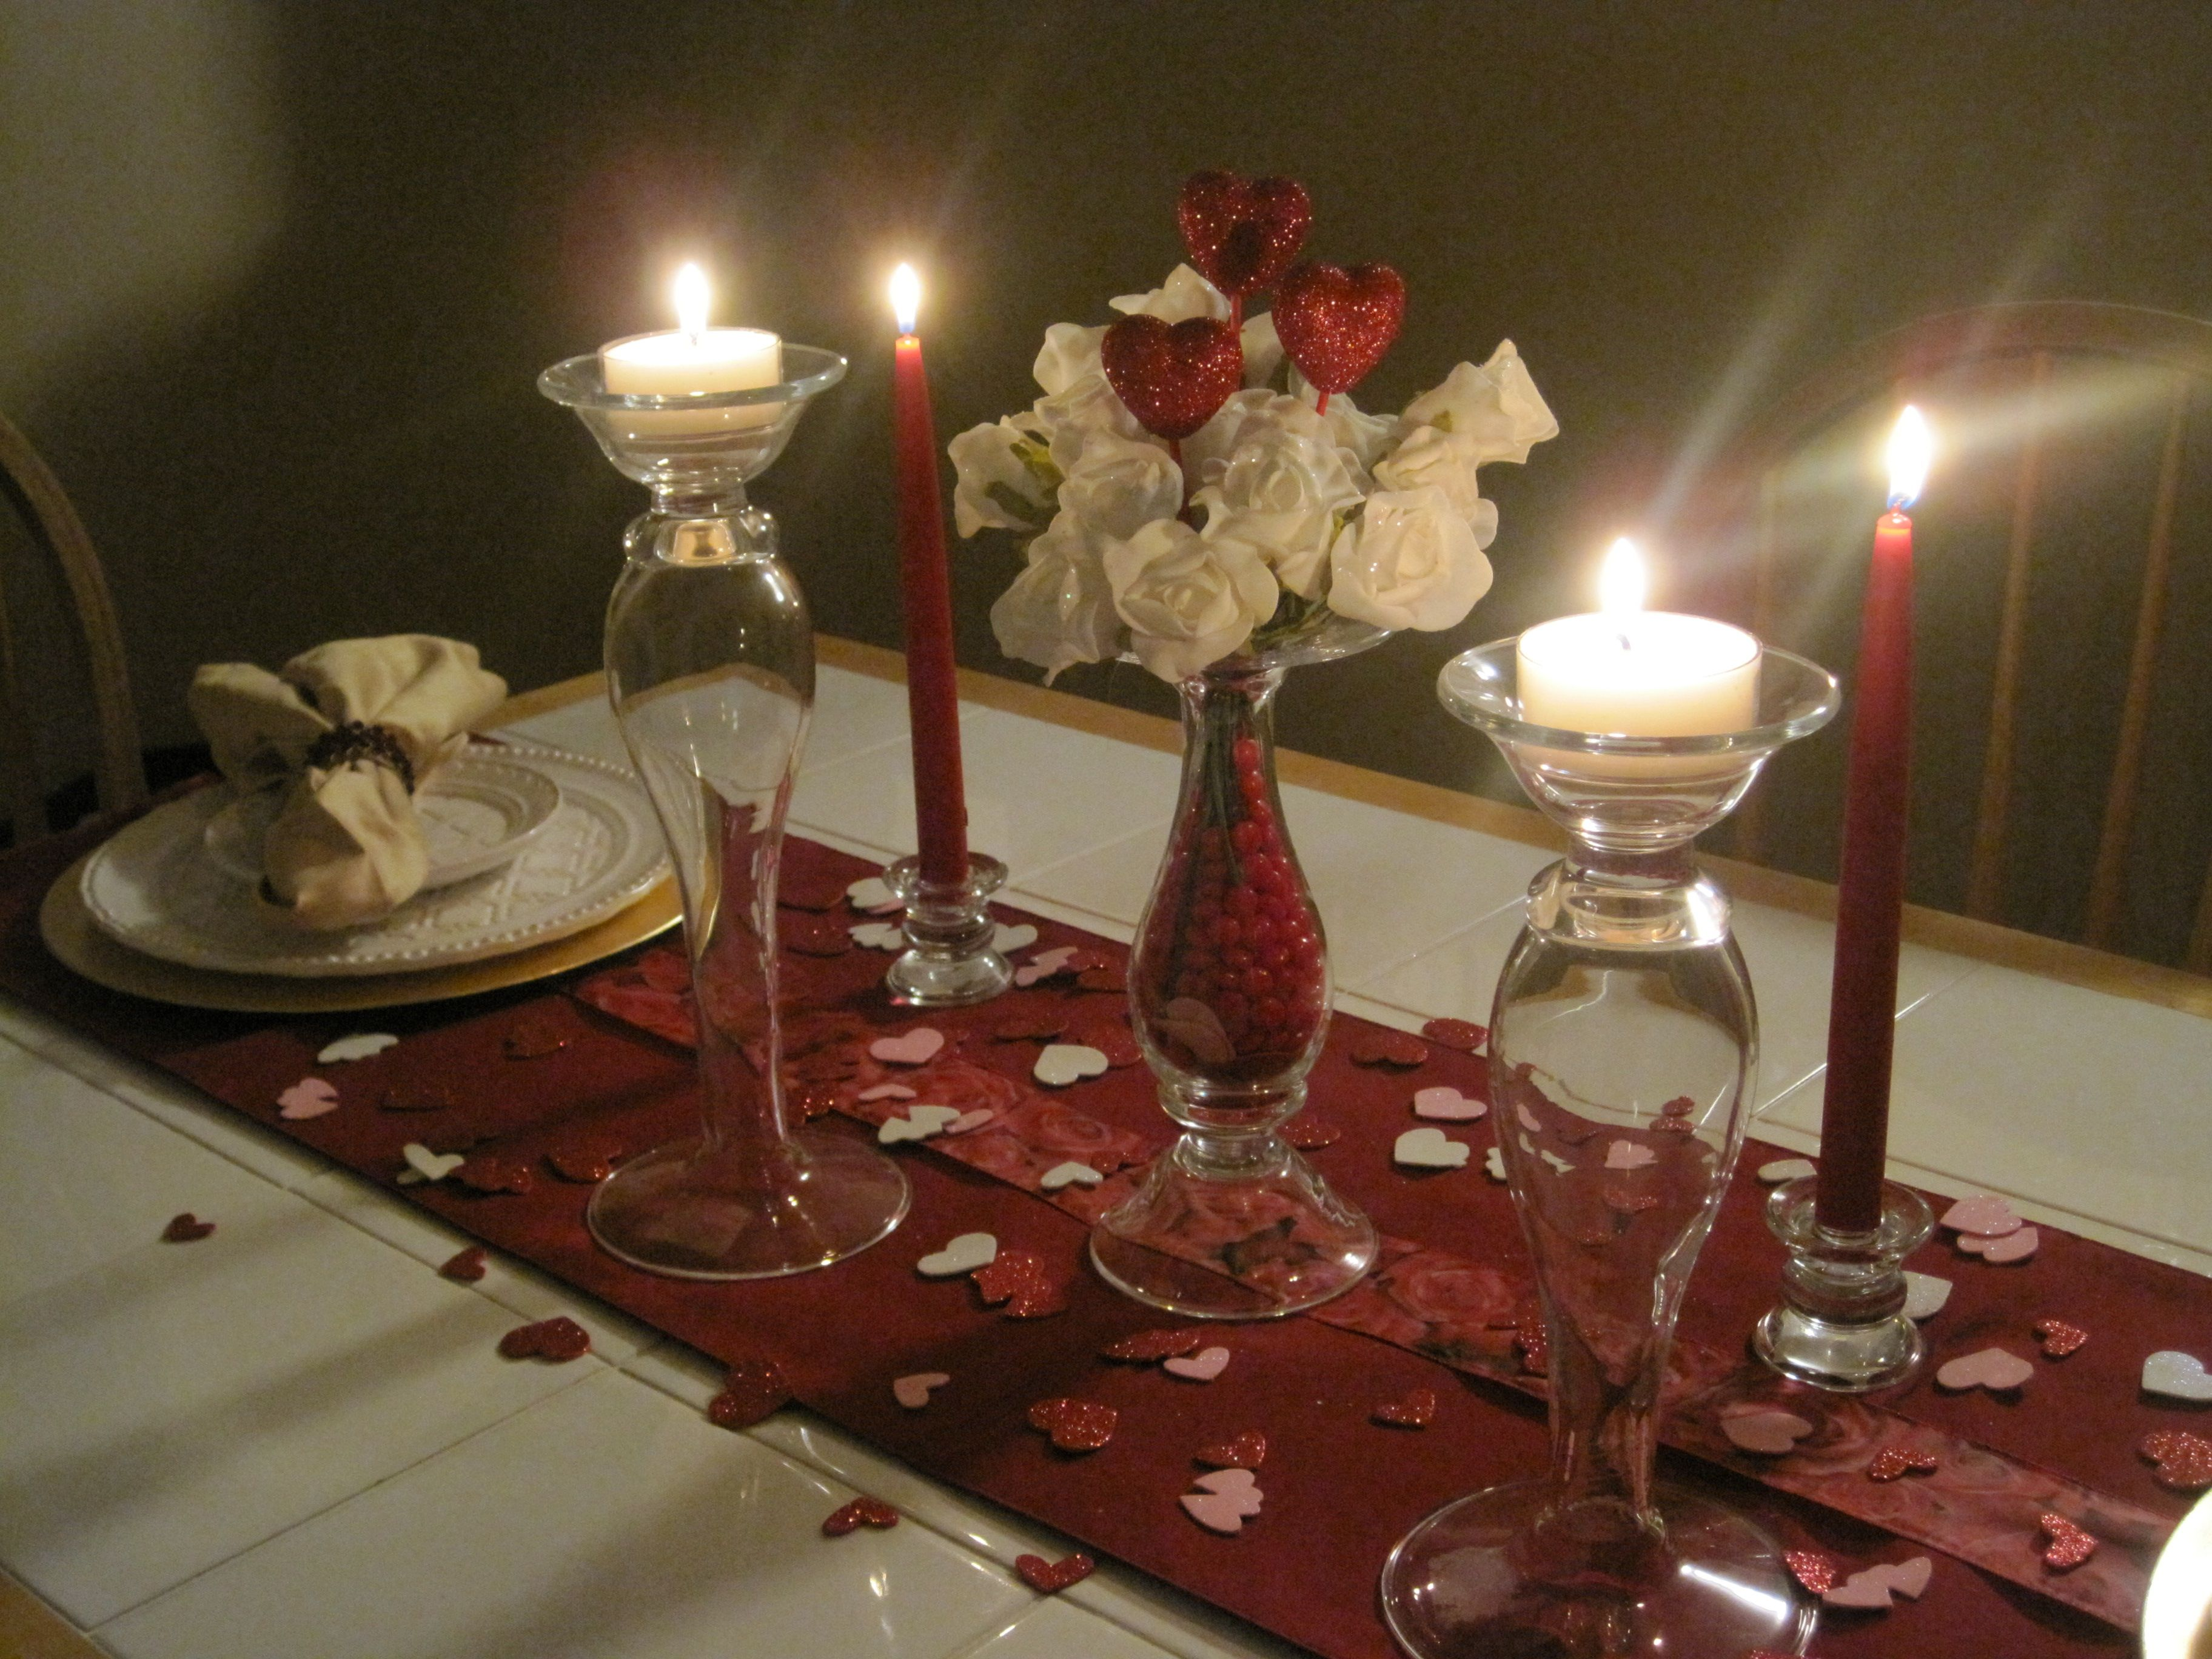 Romantic valentines meals at home - Romantic Dinner Table Ideas And Tips